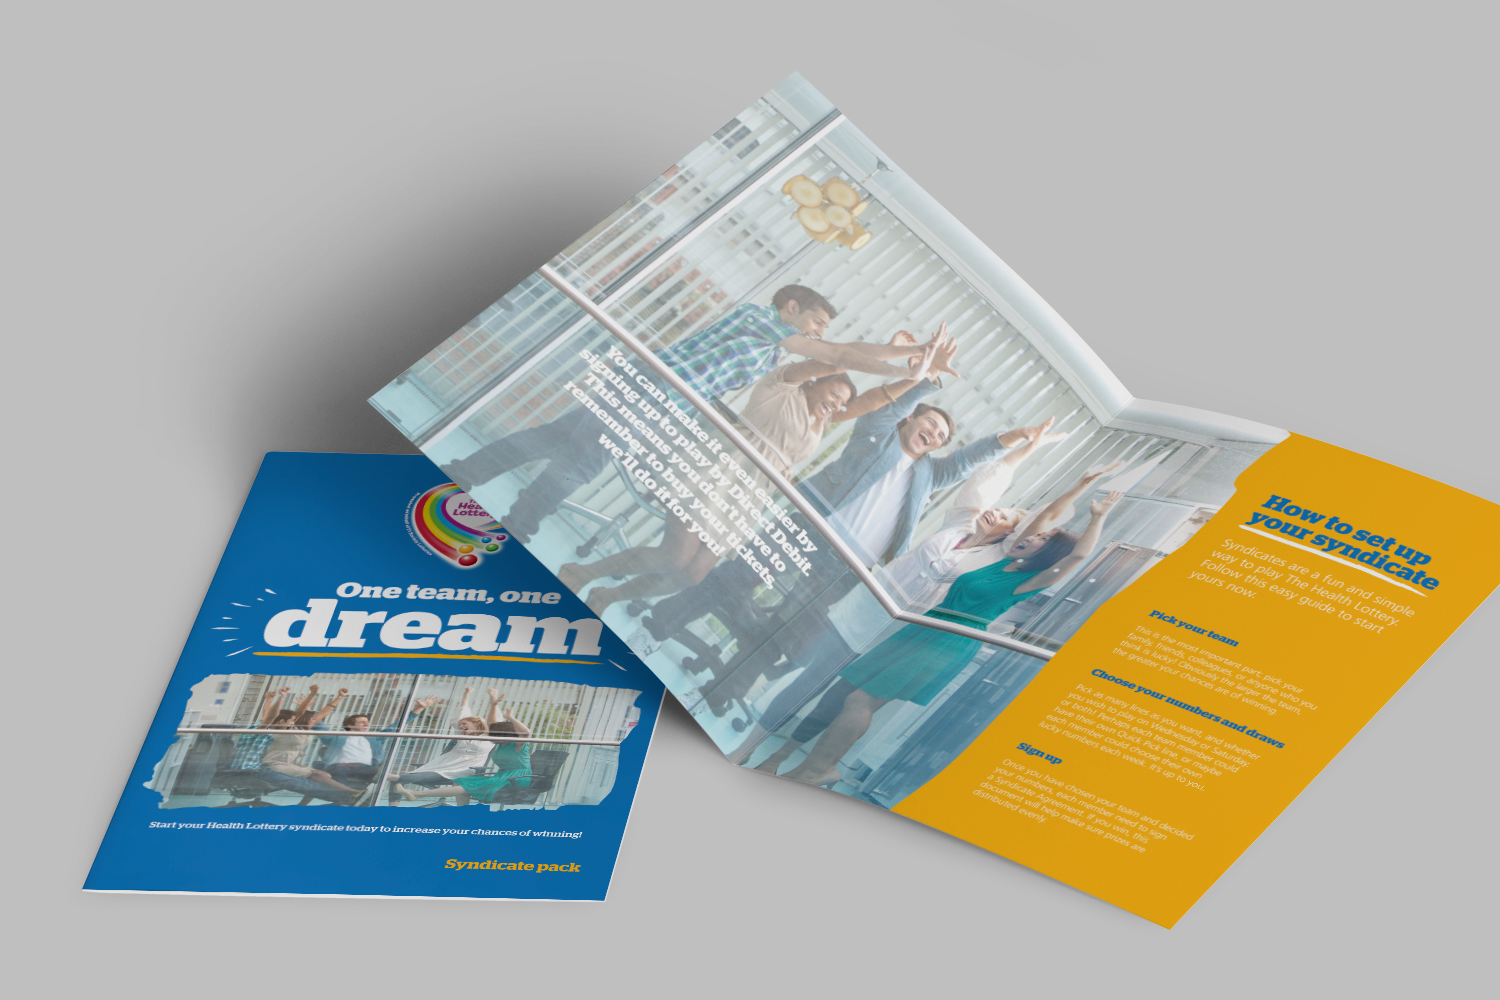 health-lottery-syndicate-booklet.jpg